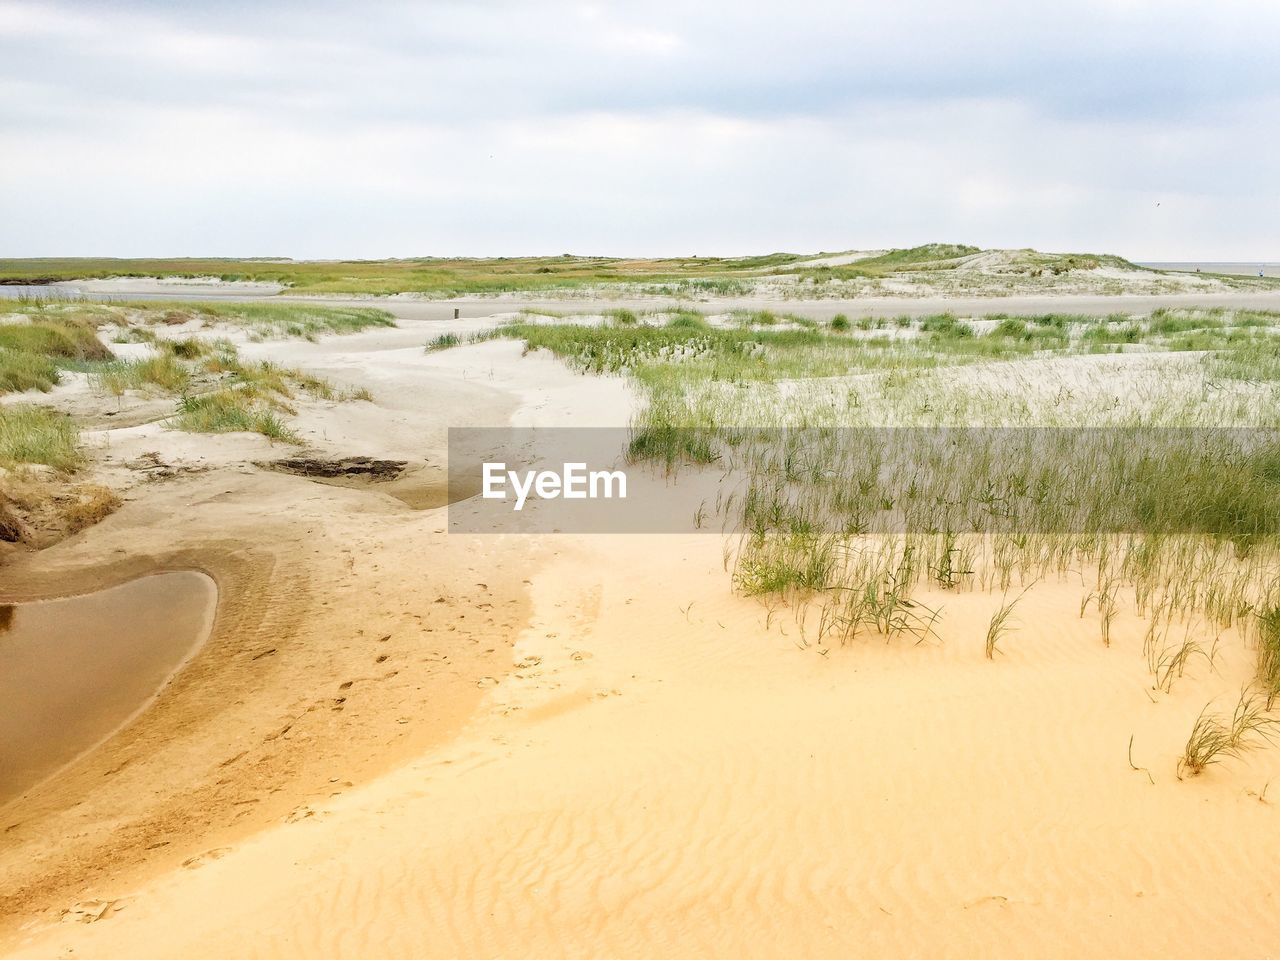 sand, nature, tranquility, tranquil scene, scenics, sky, beach, landscape, beauty in nature, day, no people, outdoors, sea, water, sand dune